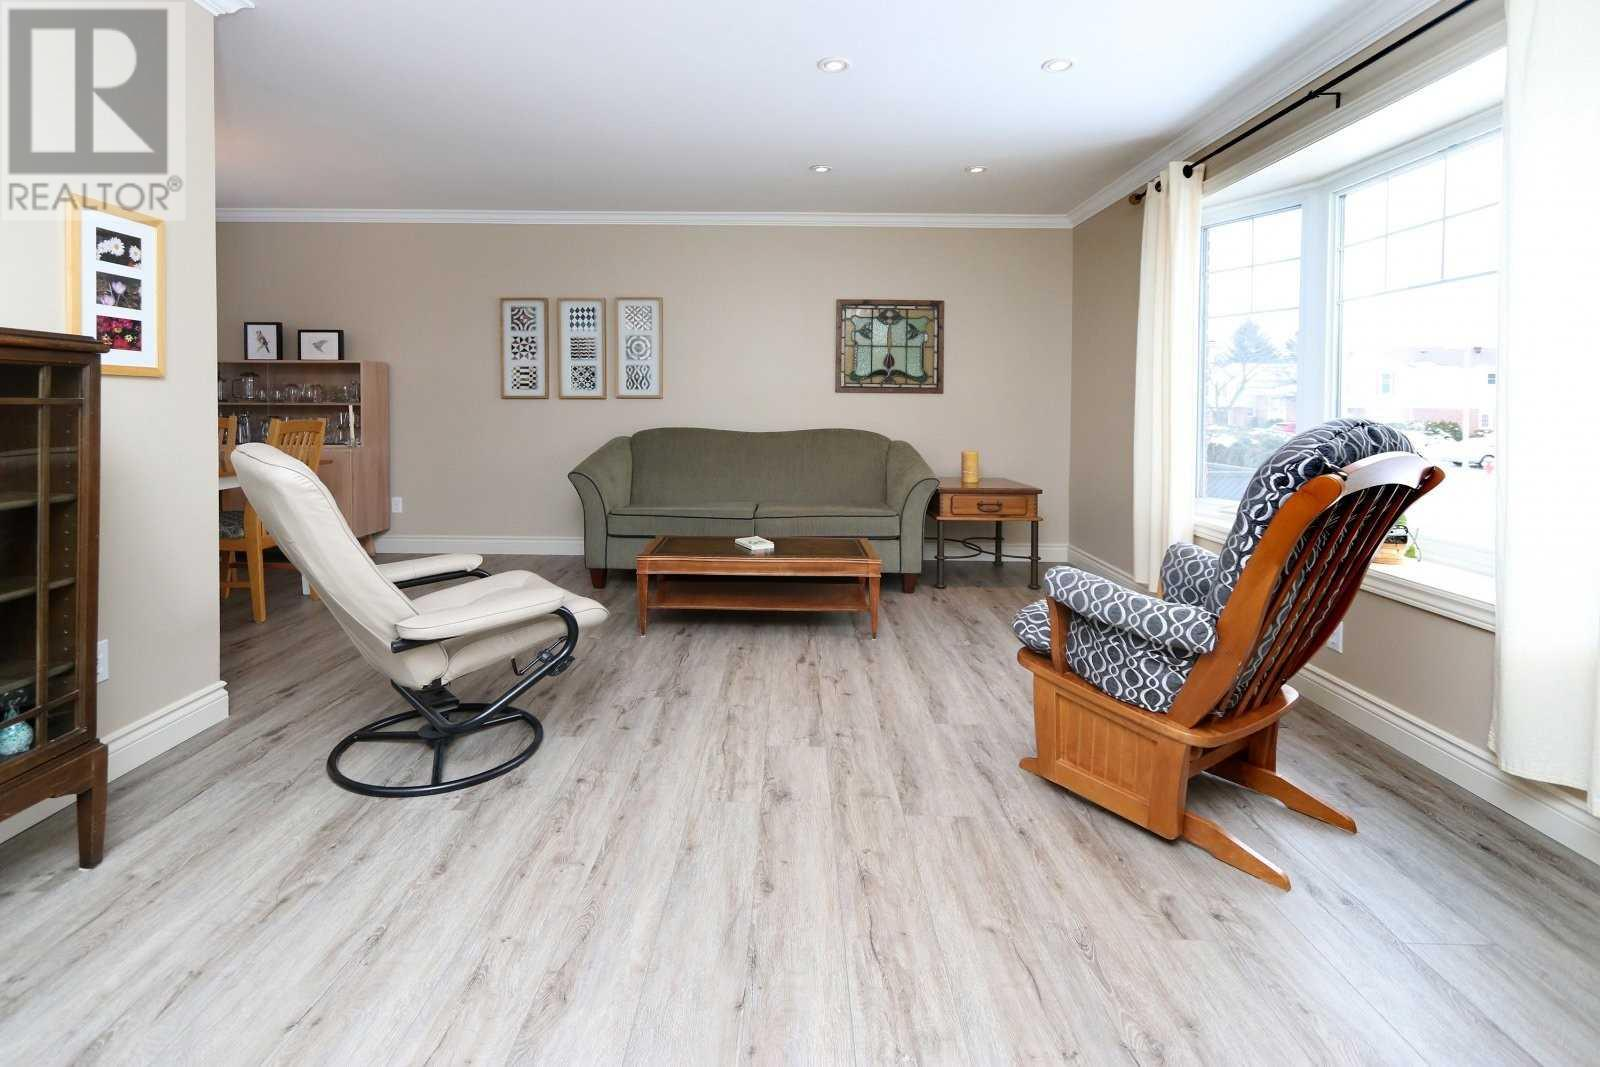 2524 Windjammer Rd, Mississauga, Ontario  L5L 1H9 - Photo 5 - W4675885